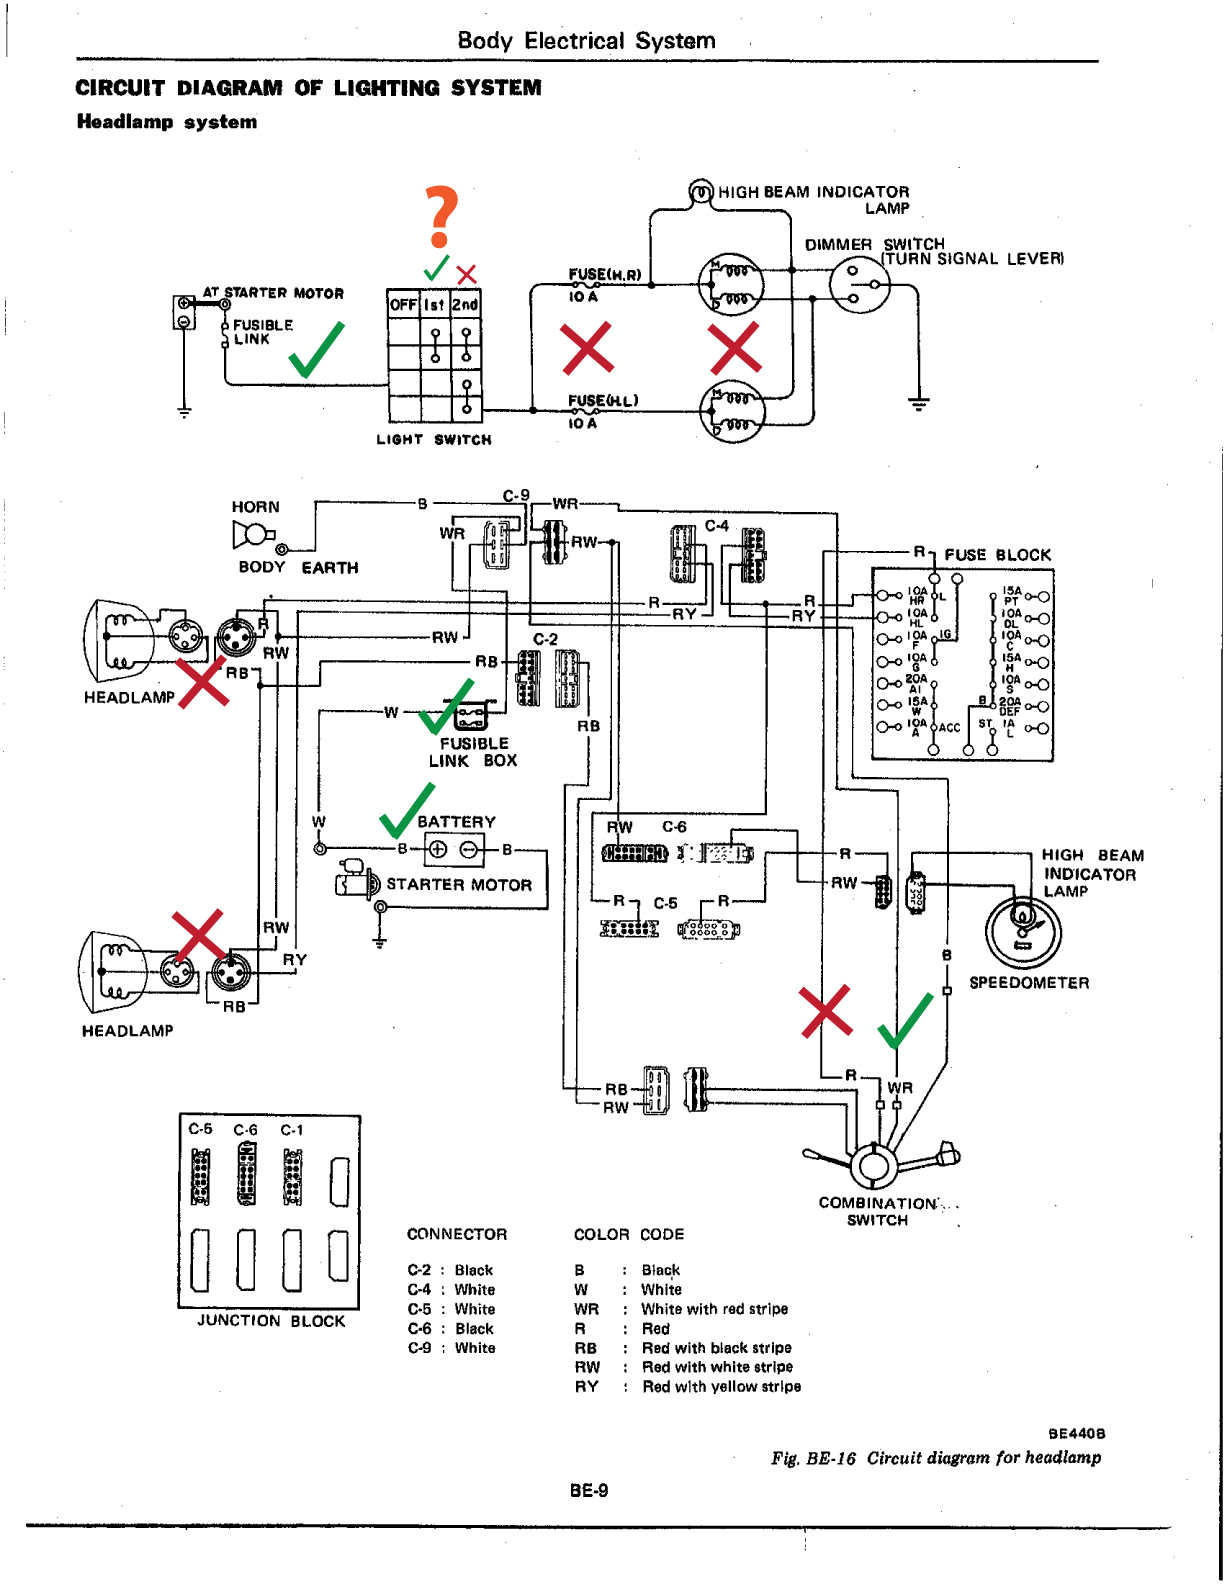 Wiring Diagram Switch Schematic Combo Start Building A And Combination 1982 280zx Experts Of U2022 Rh Evilcloud Co Uk Leviton Plug